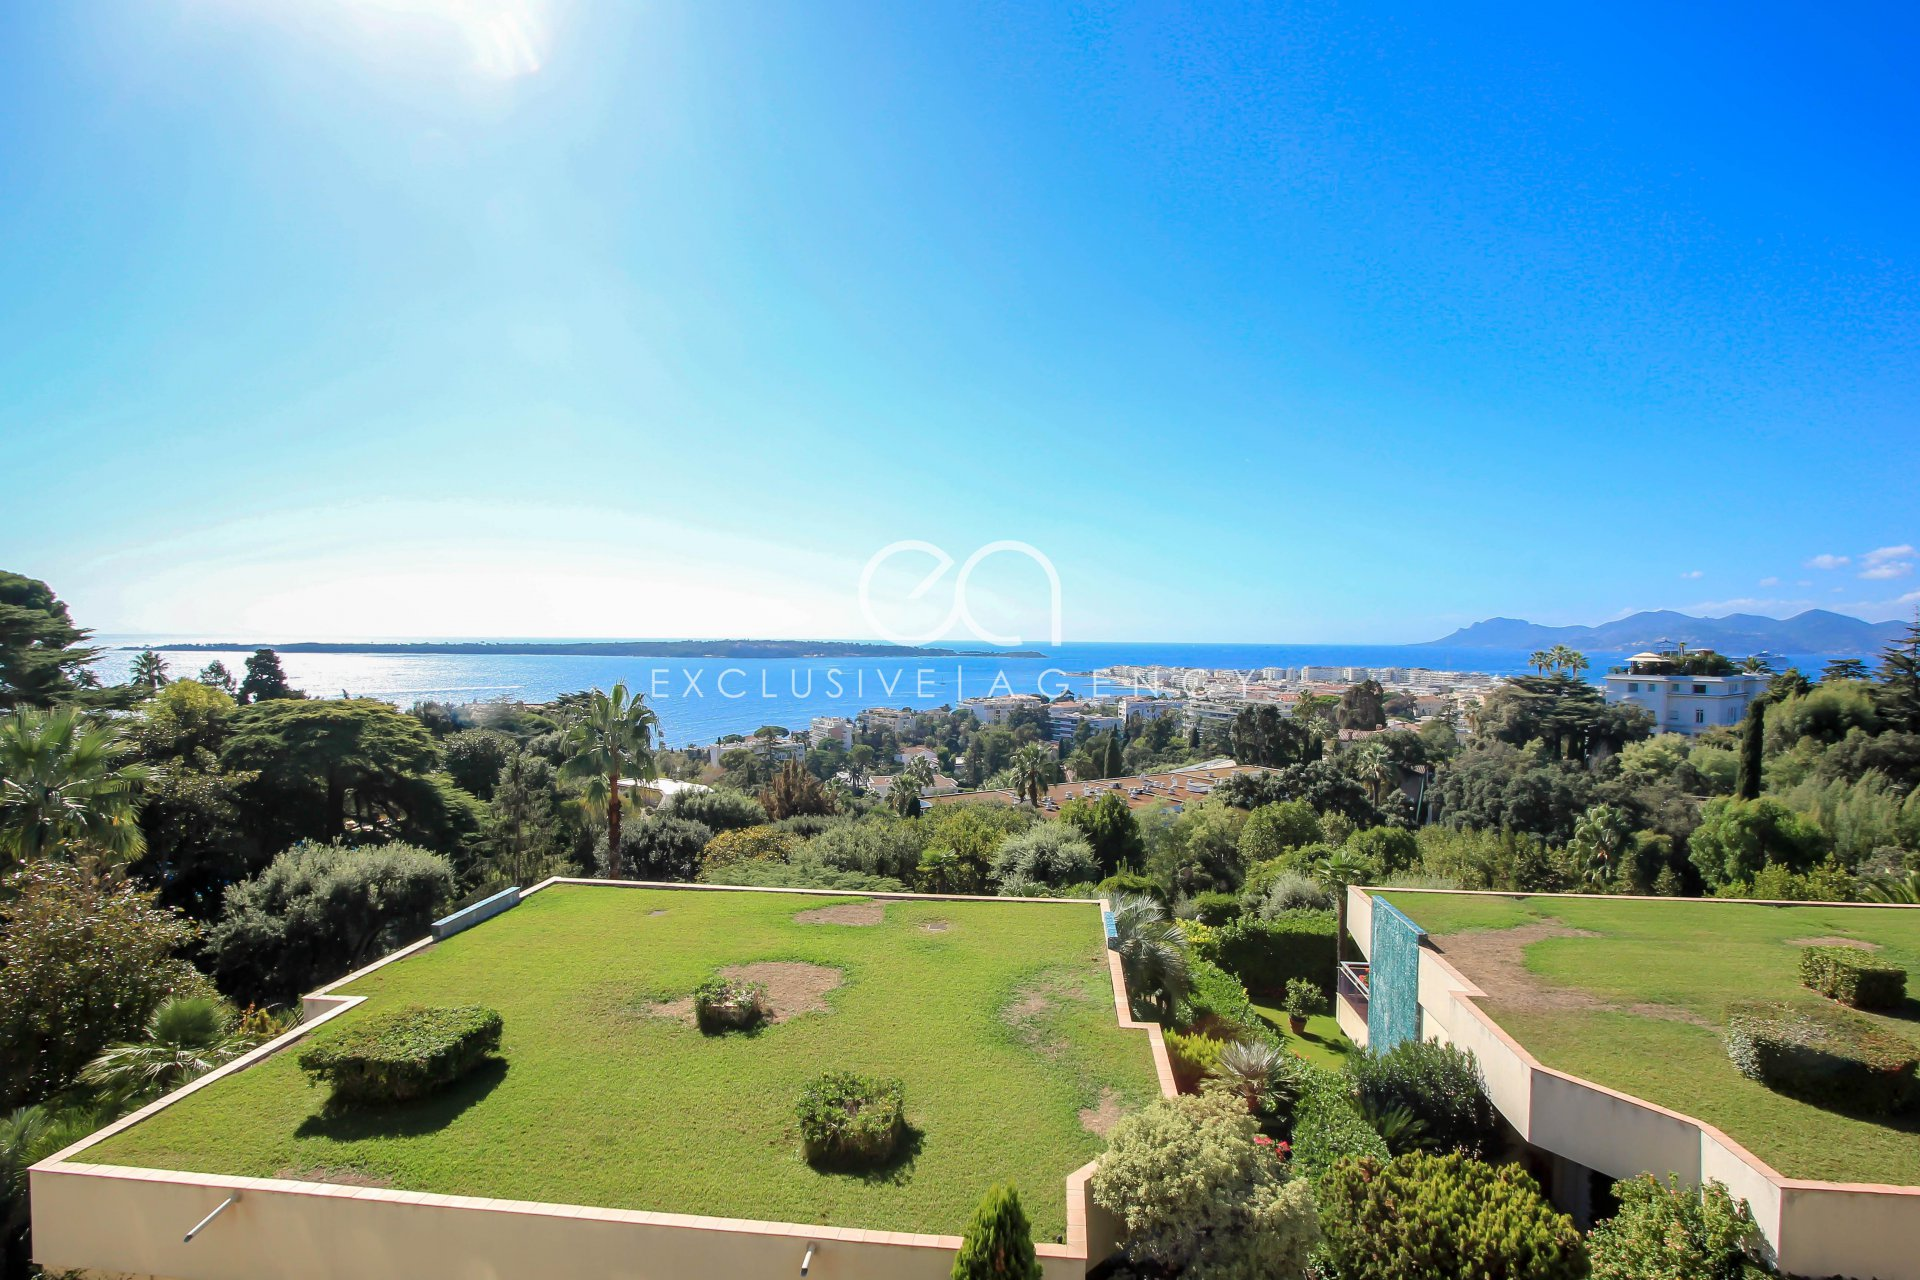 For sale Cannes Californie Apartment-Villa of 170sqm with terrace of 80sqm offering beautiful panoramic sea view.